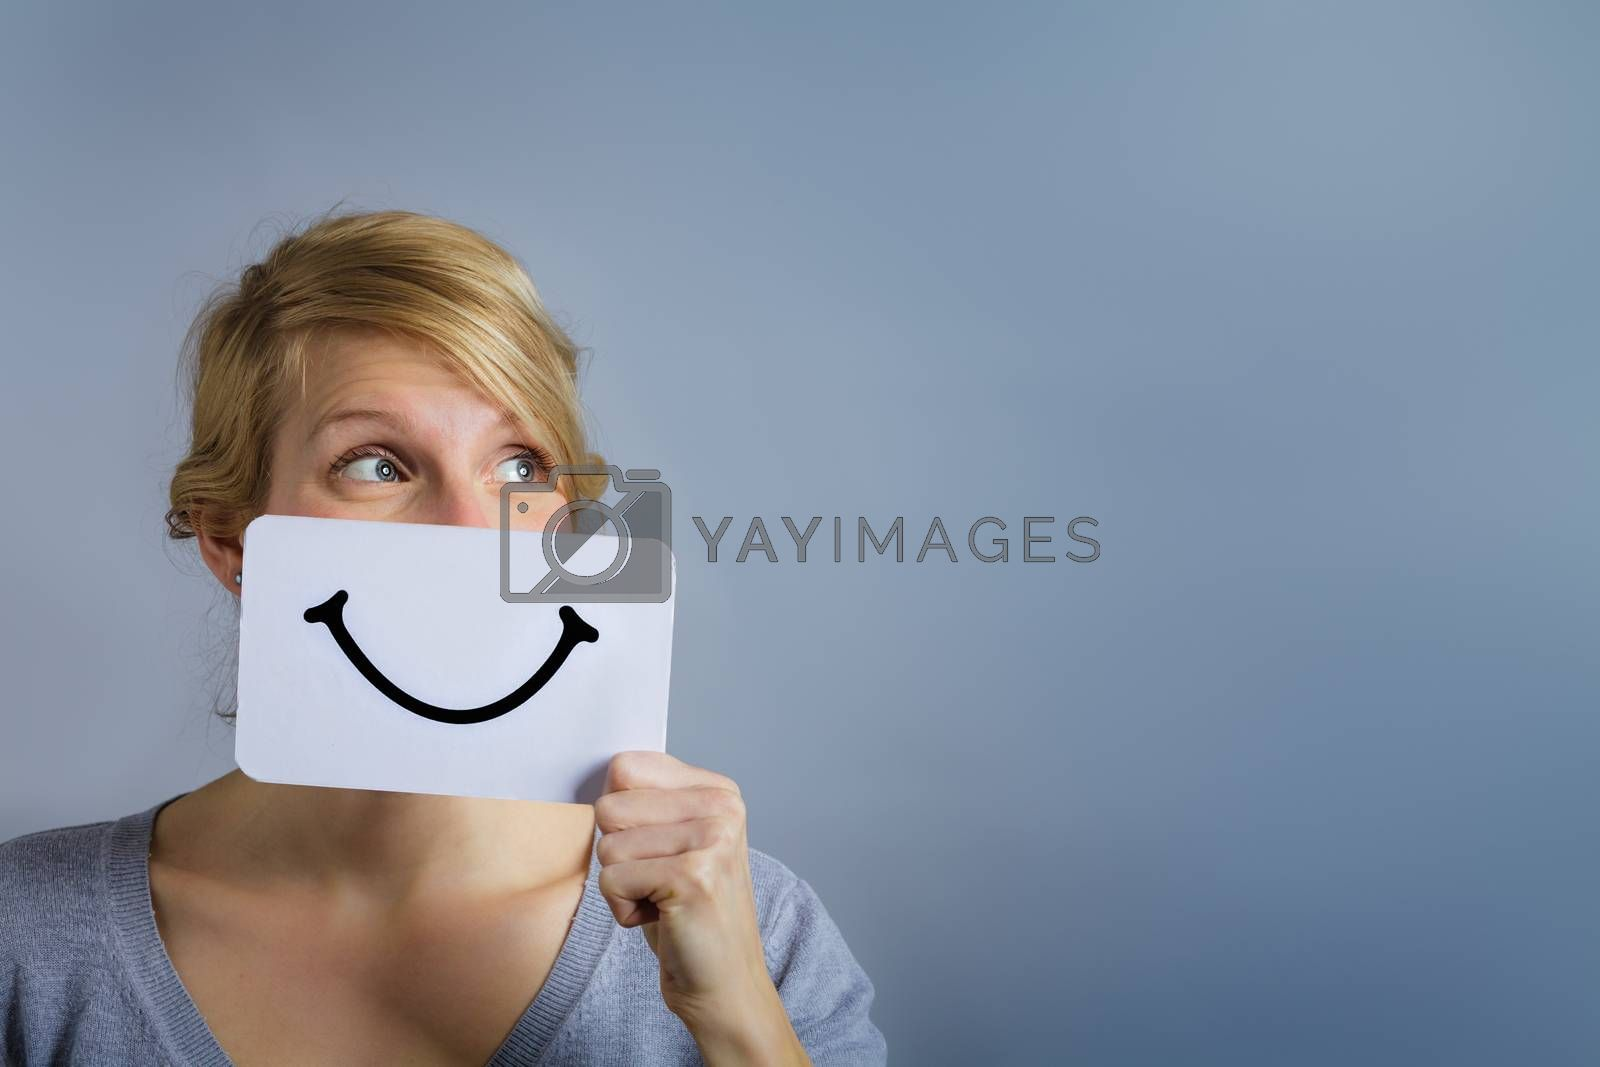 Happy Portrait of a Woman Holding a Smiling Mood Board